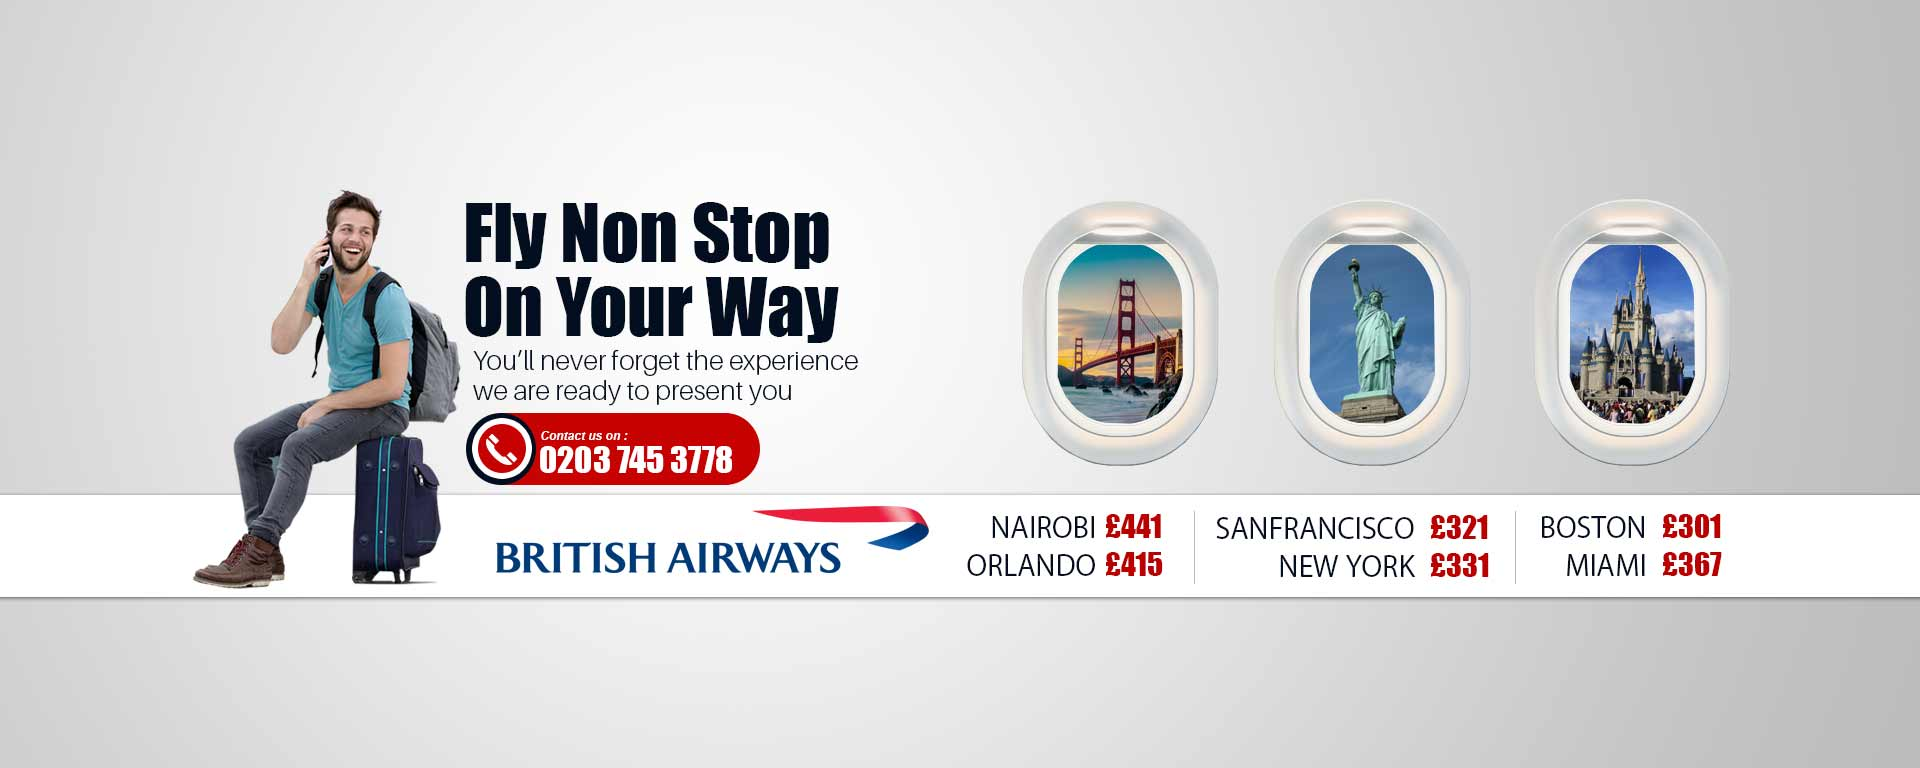 Book Cheap flight Deals Now – Search and Compare cheap flights at TravelJunction and book online cheap flight